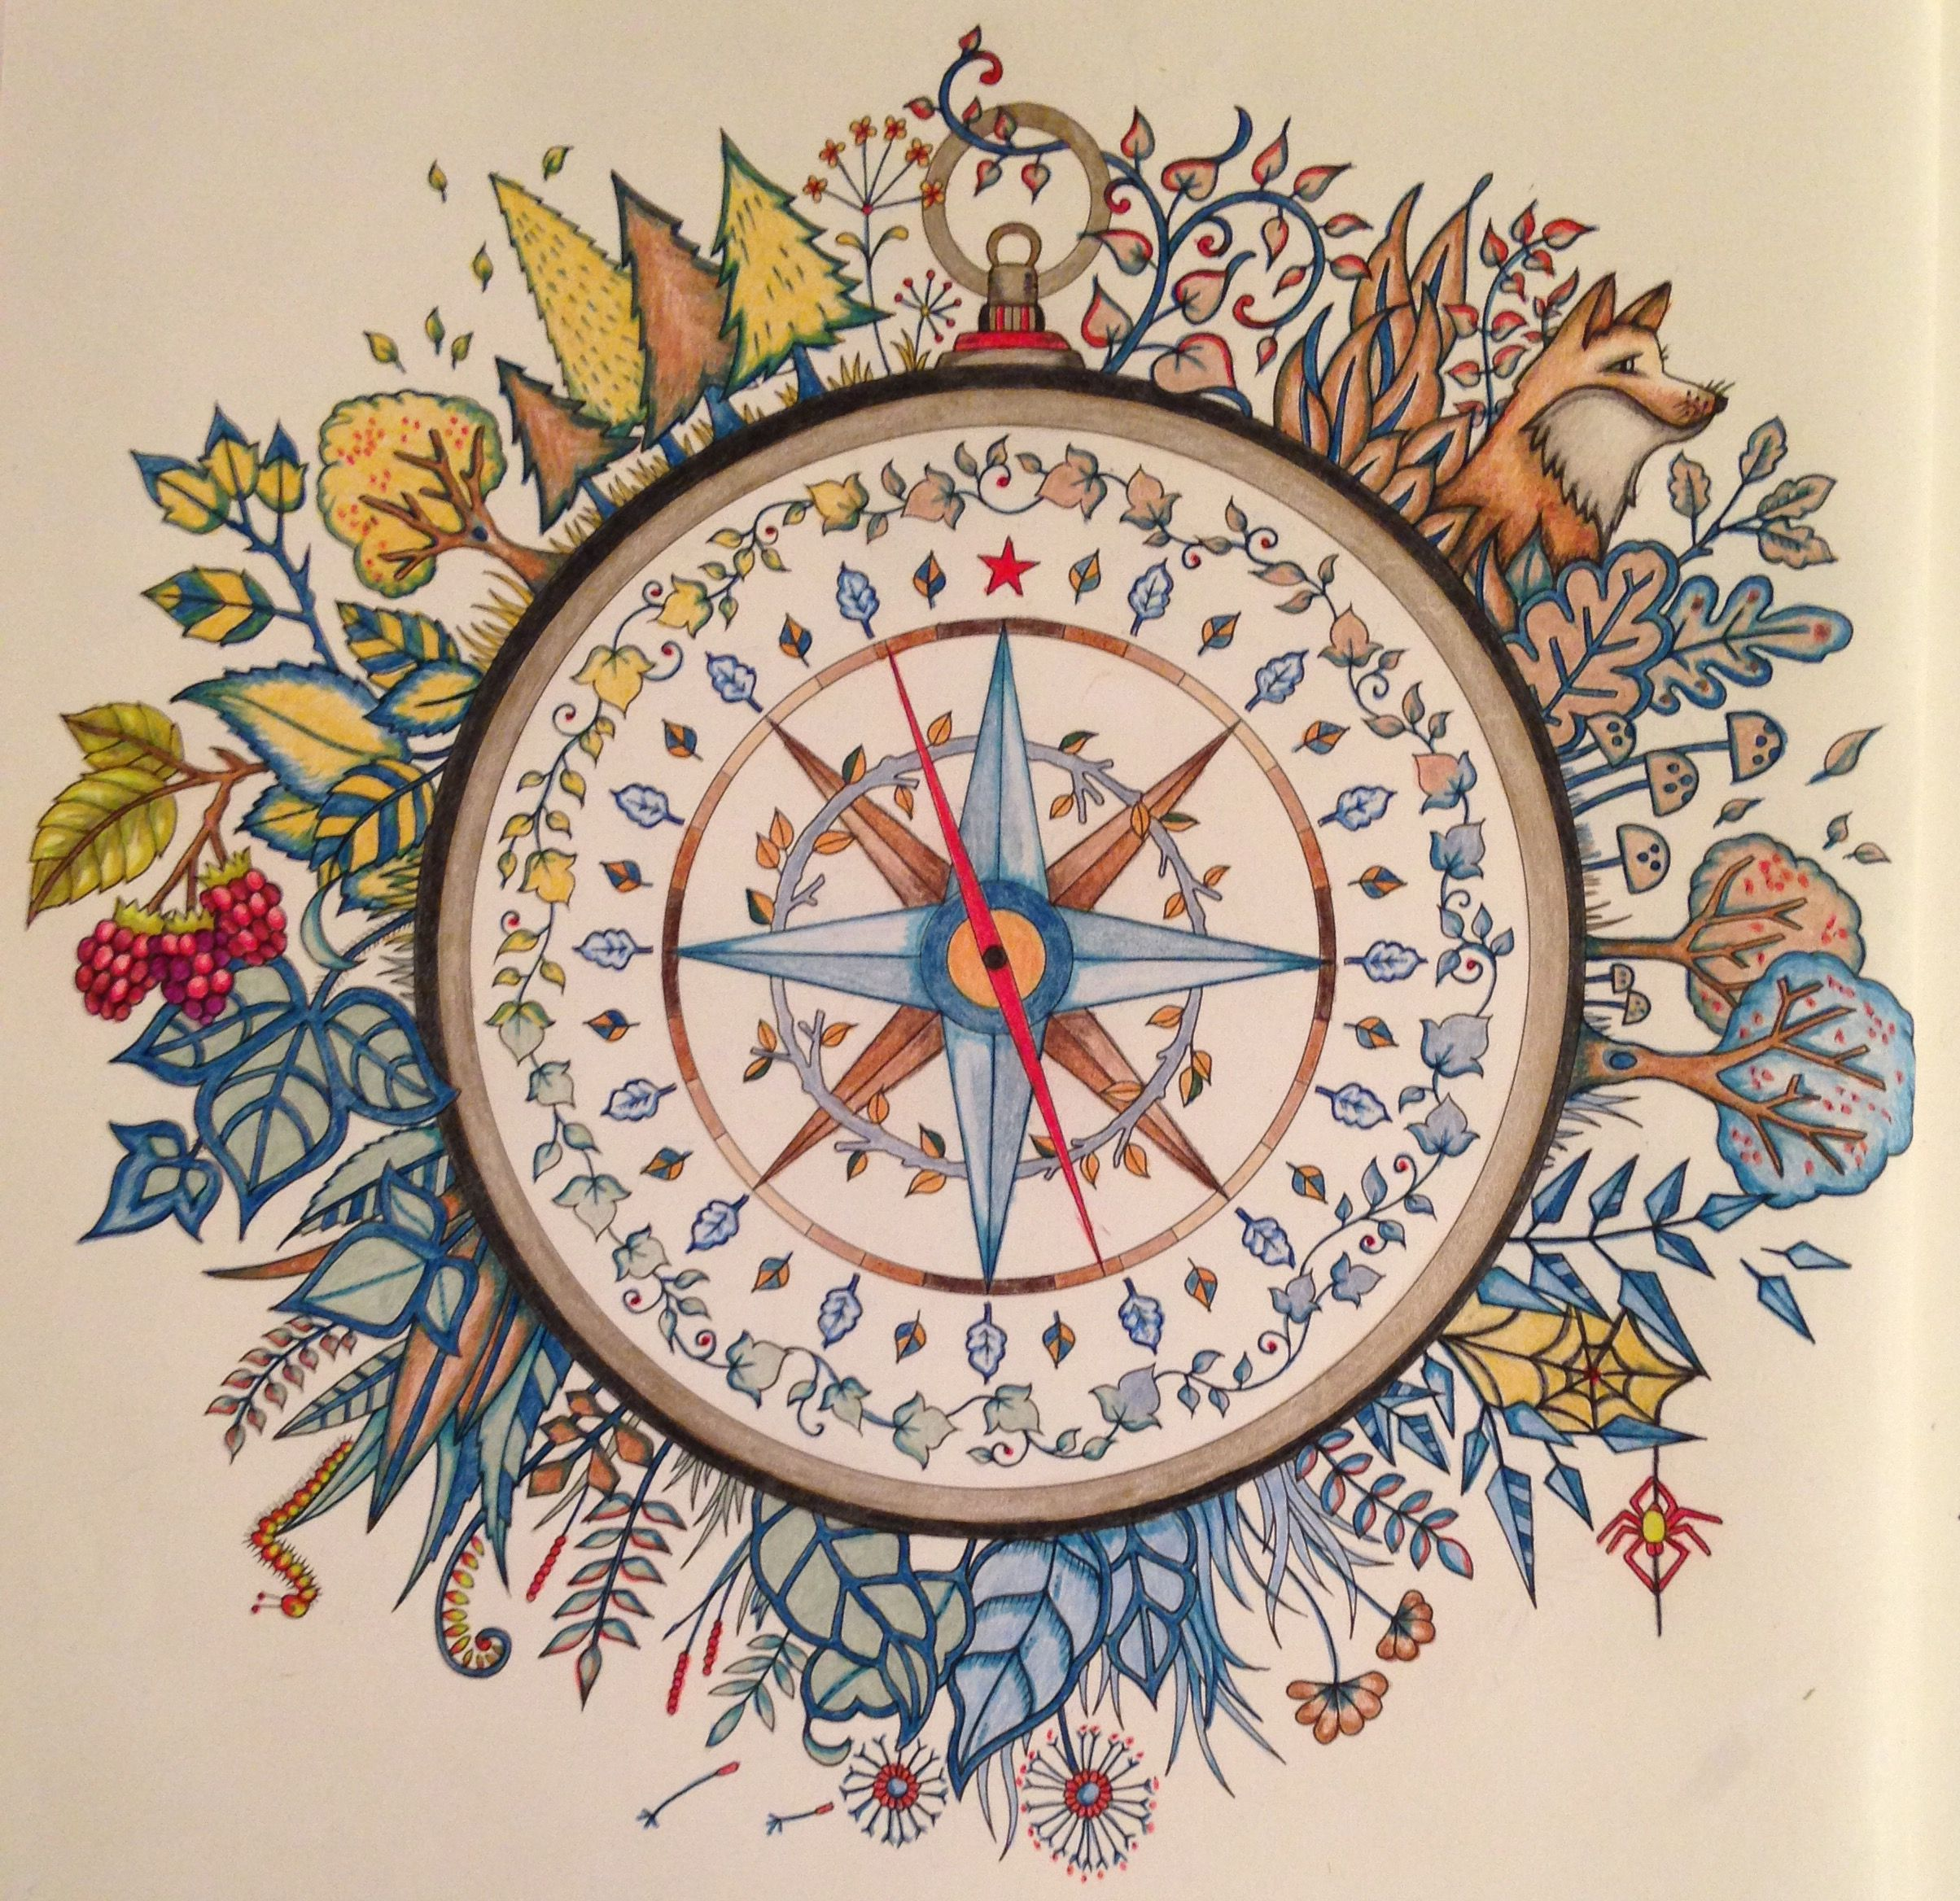 Compass Rose Tattoo Adult Coloring Books Colouring Johanna Basford Drawing Art Magnetic Book Colored Pencils